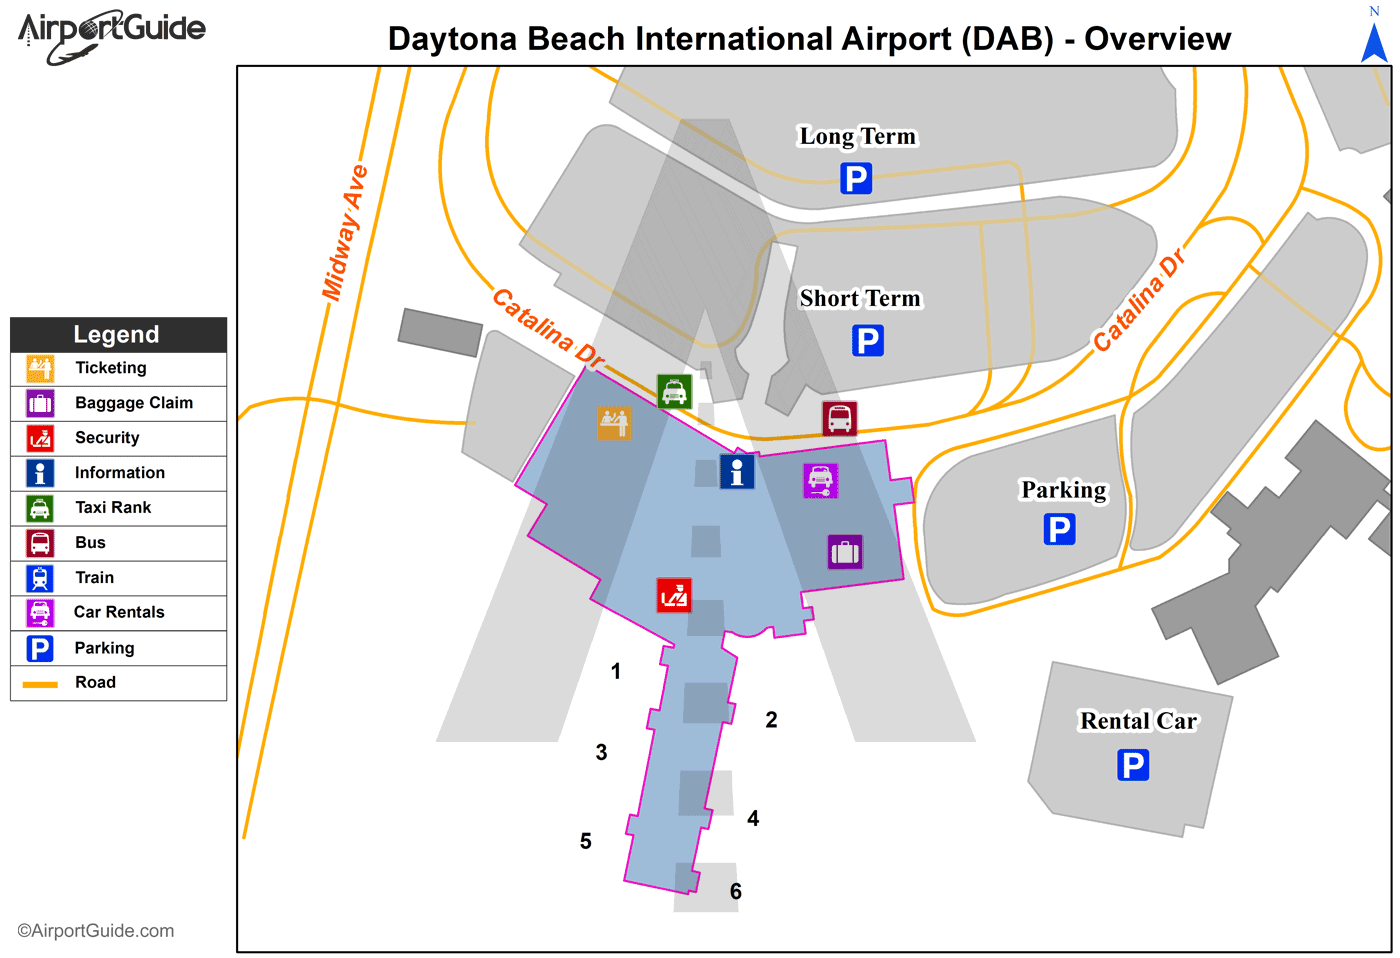 Daytona Beach - Daytona Beach International (DAB) Airport ... on port orange map, ormond beach map, lake okeechobee on the map, ft. myers map, miami map, new yorker map, west palm map, nashville fairgrounds map, dunedin map, manchester united kingdom map, pompano beach map, deltona map, bradenton map, brandon map, dayton map, ft. lauderdale map, florida map, the keys map, giving directions map, st. augustine map,